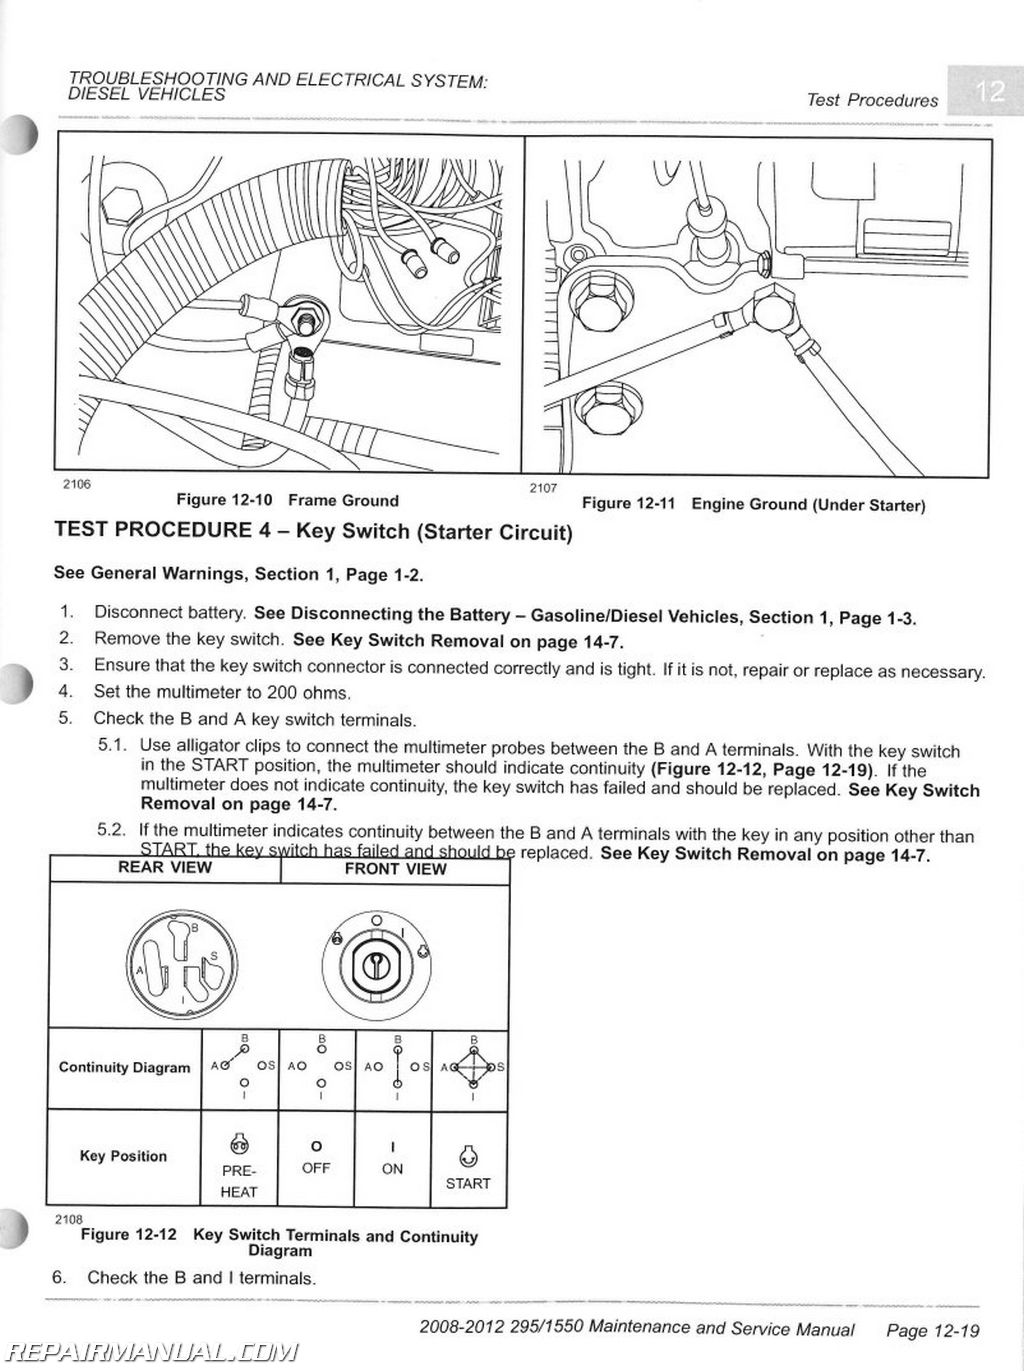 club car wiring diagram 1993 human spine 2009 28 images